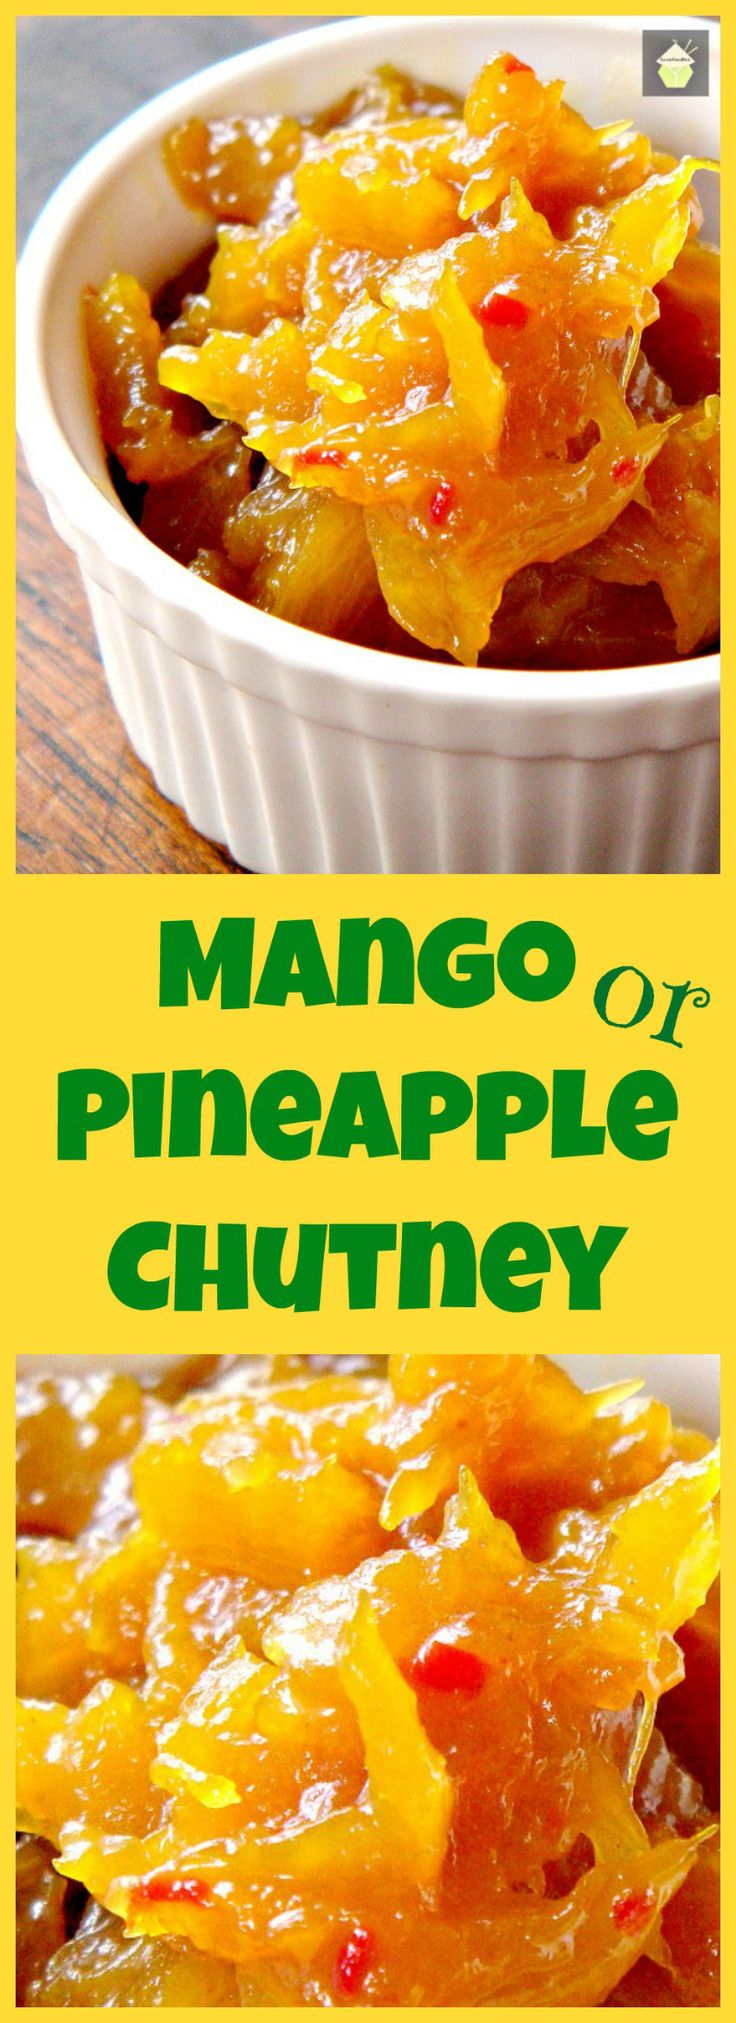 Spicy Caribbean Pineapple or Mango Chutney. An easy to make chutney which is like sunshine in a bowl! delicious with cold cuts or use as a marinade for pork or chicken. It's really delicious!